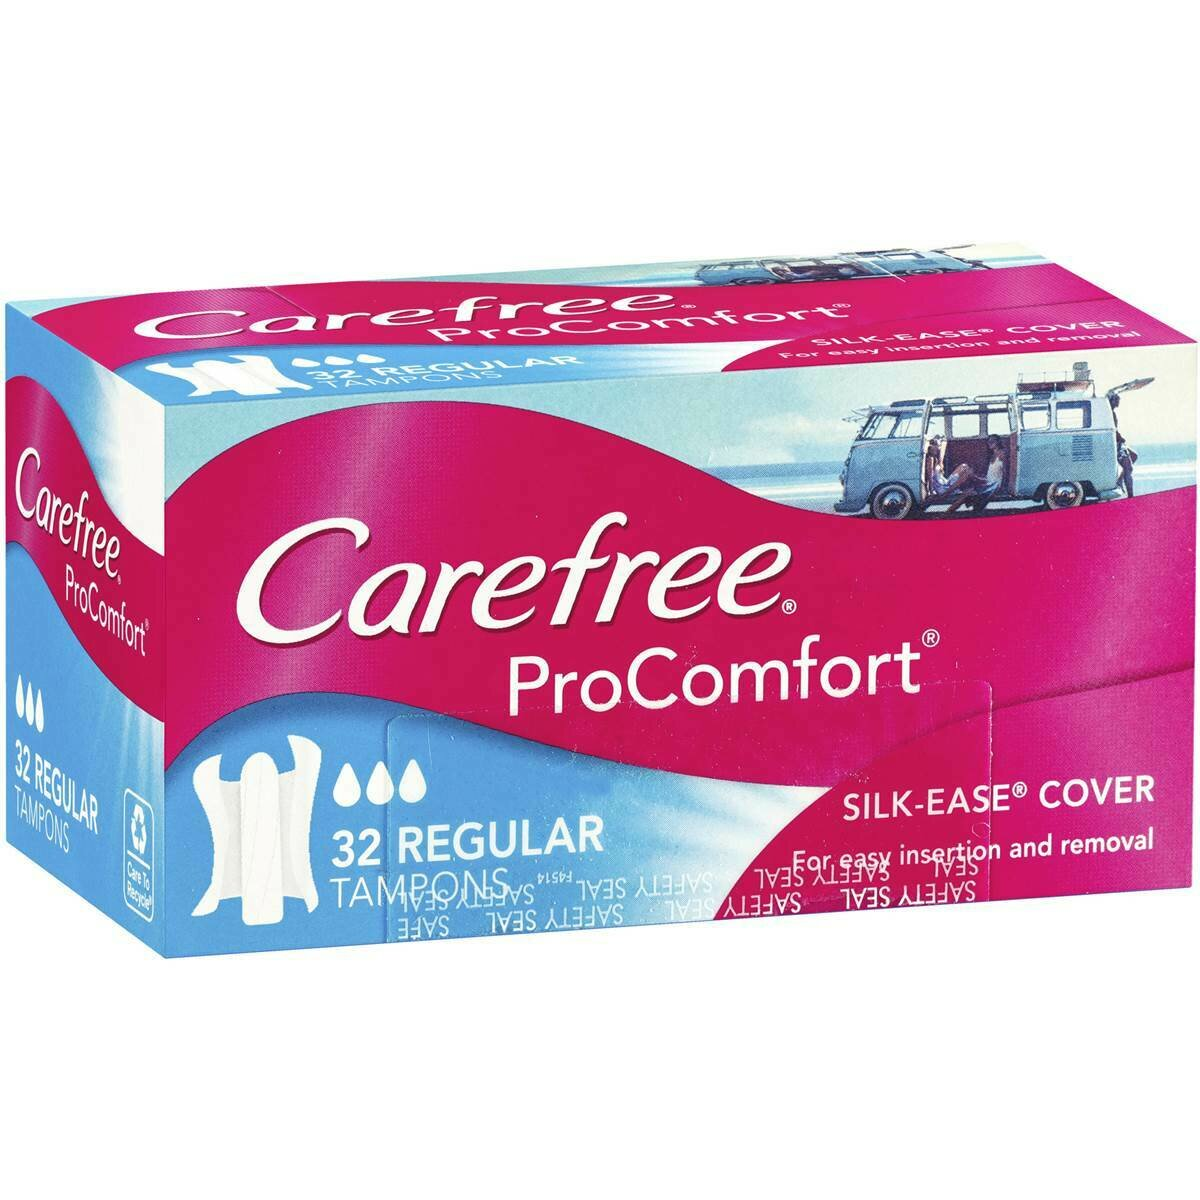 Carefree Procomfort Mini 16pk